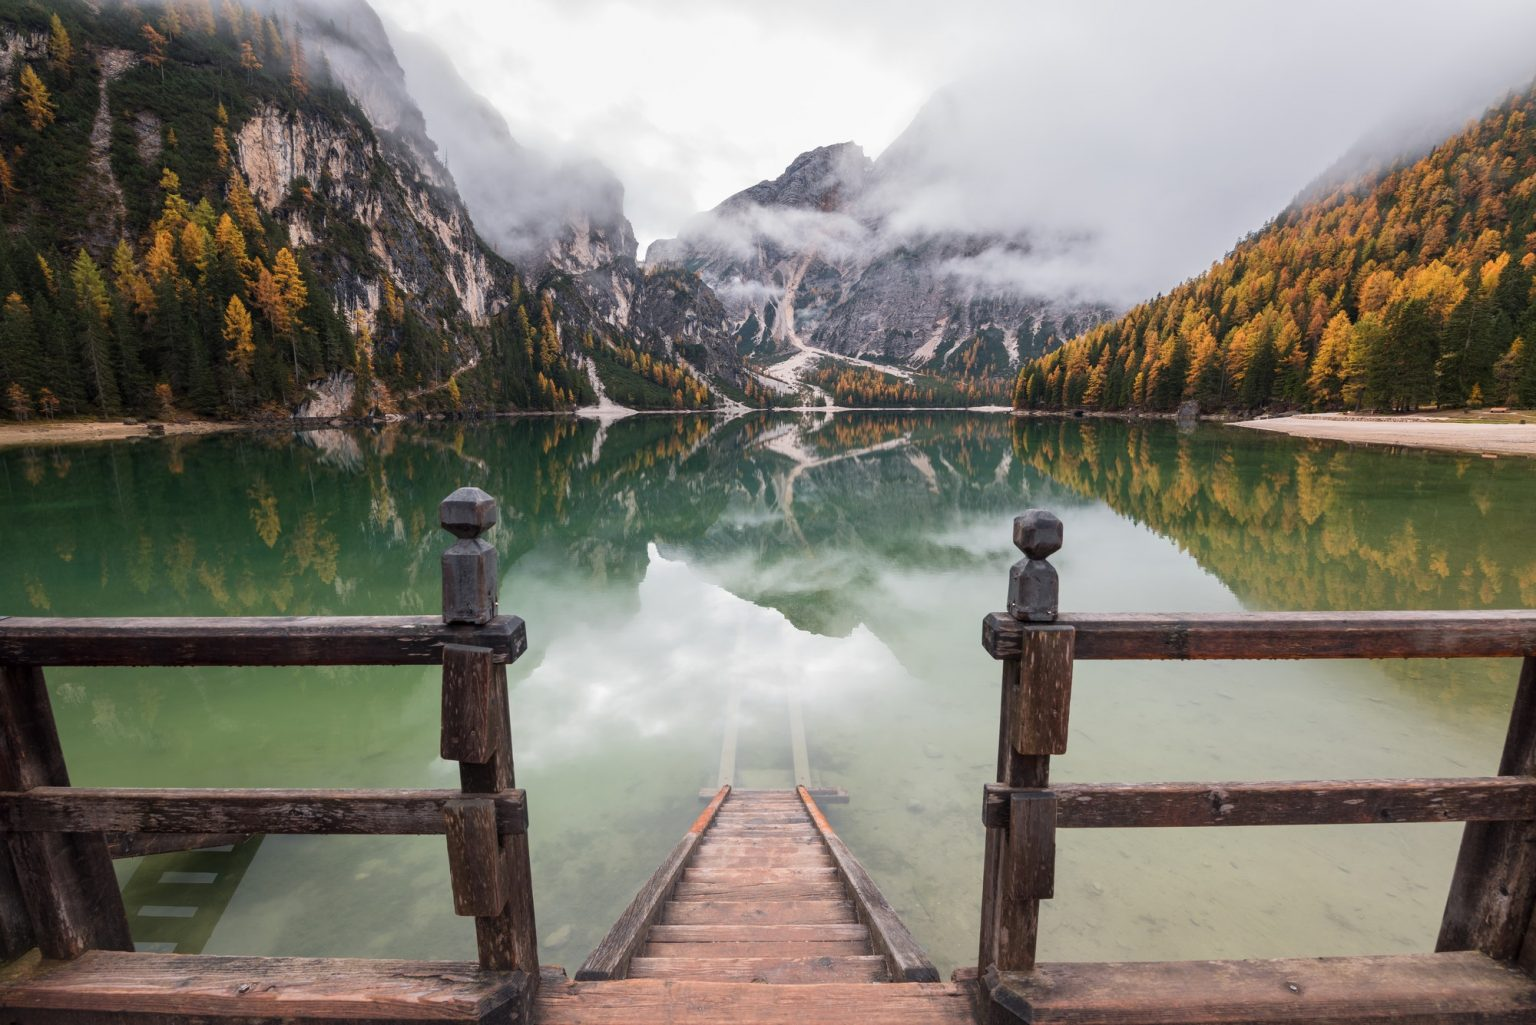 Moody autumn day in the Dolomites forest and mountains